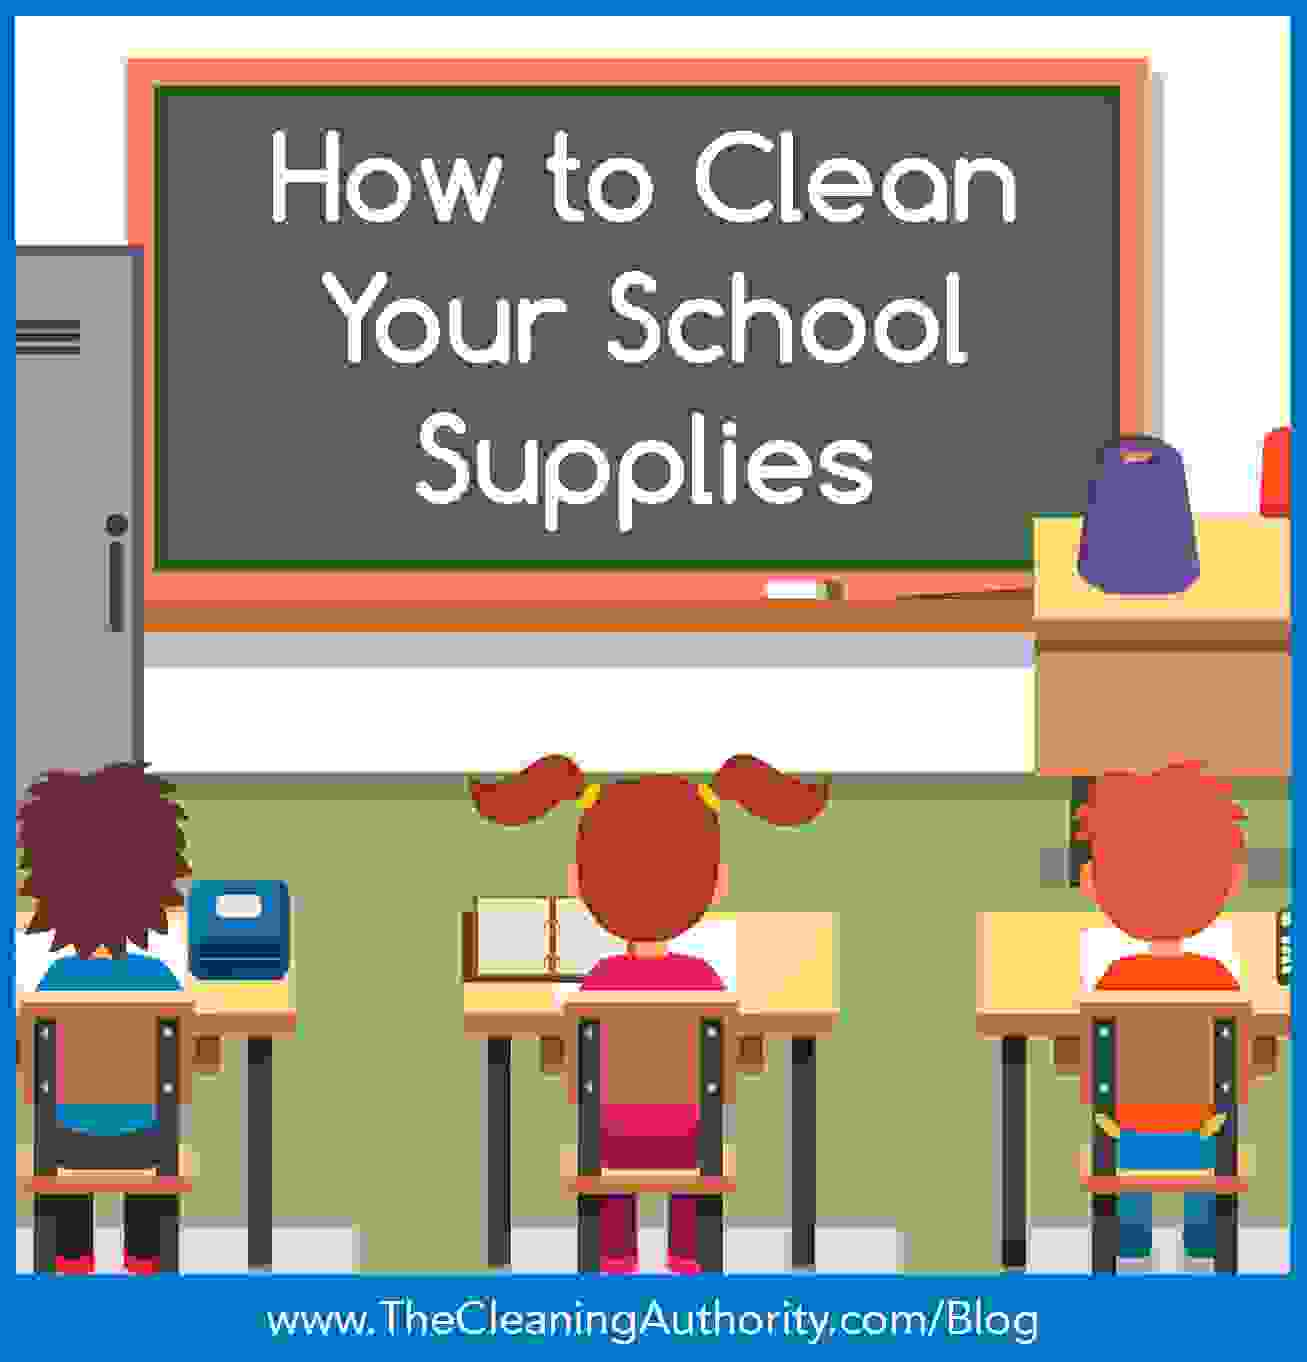 How To Clean Your School Supplies